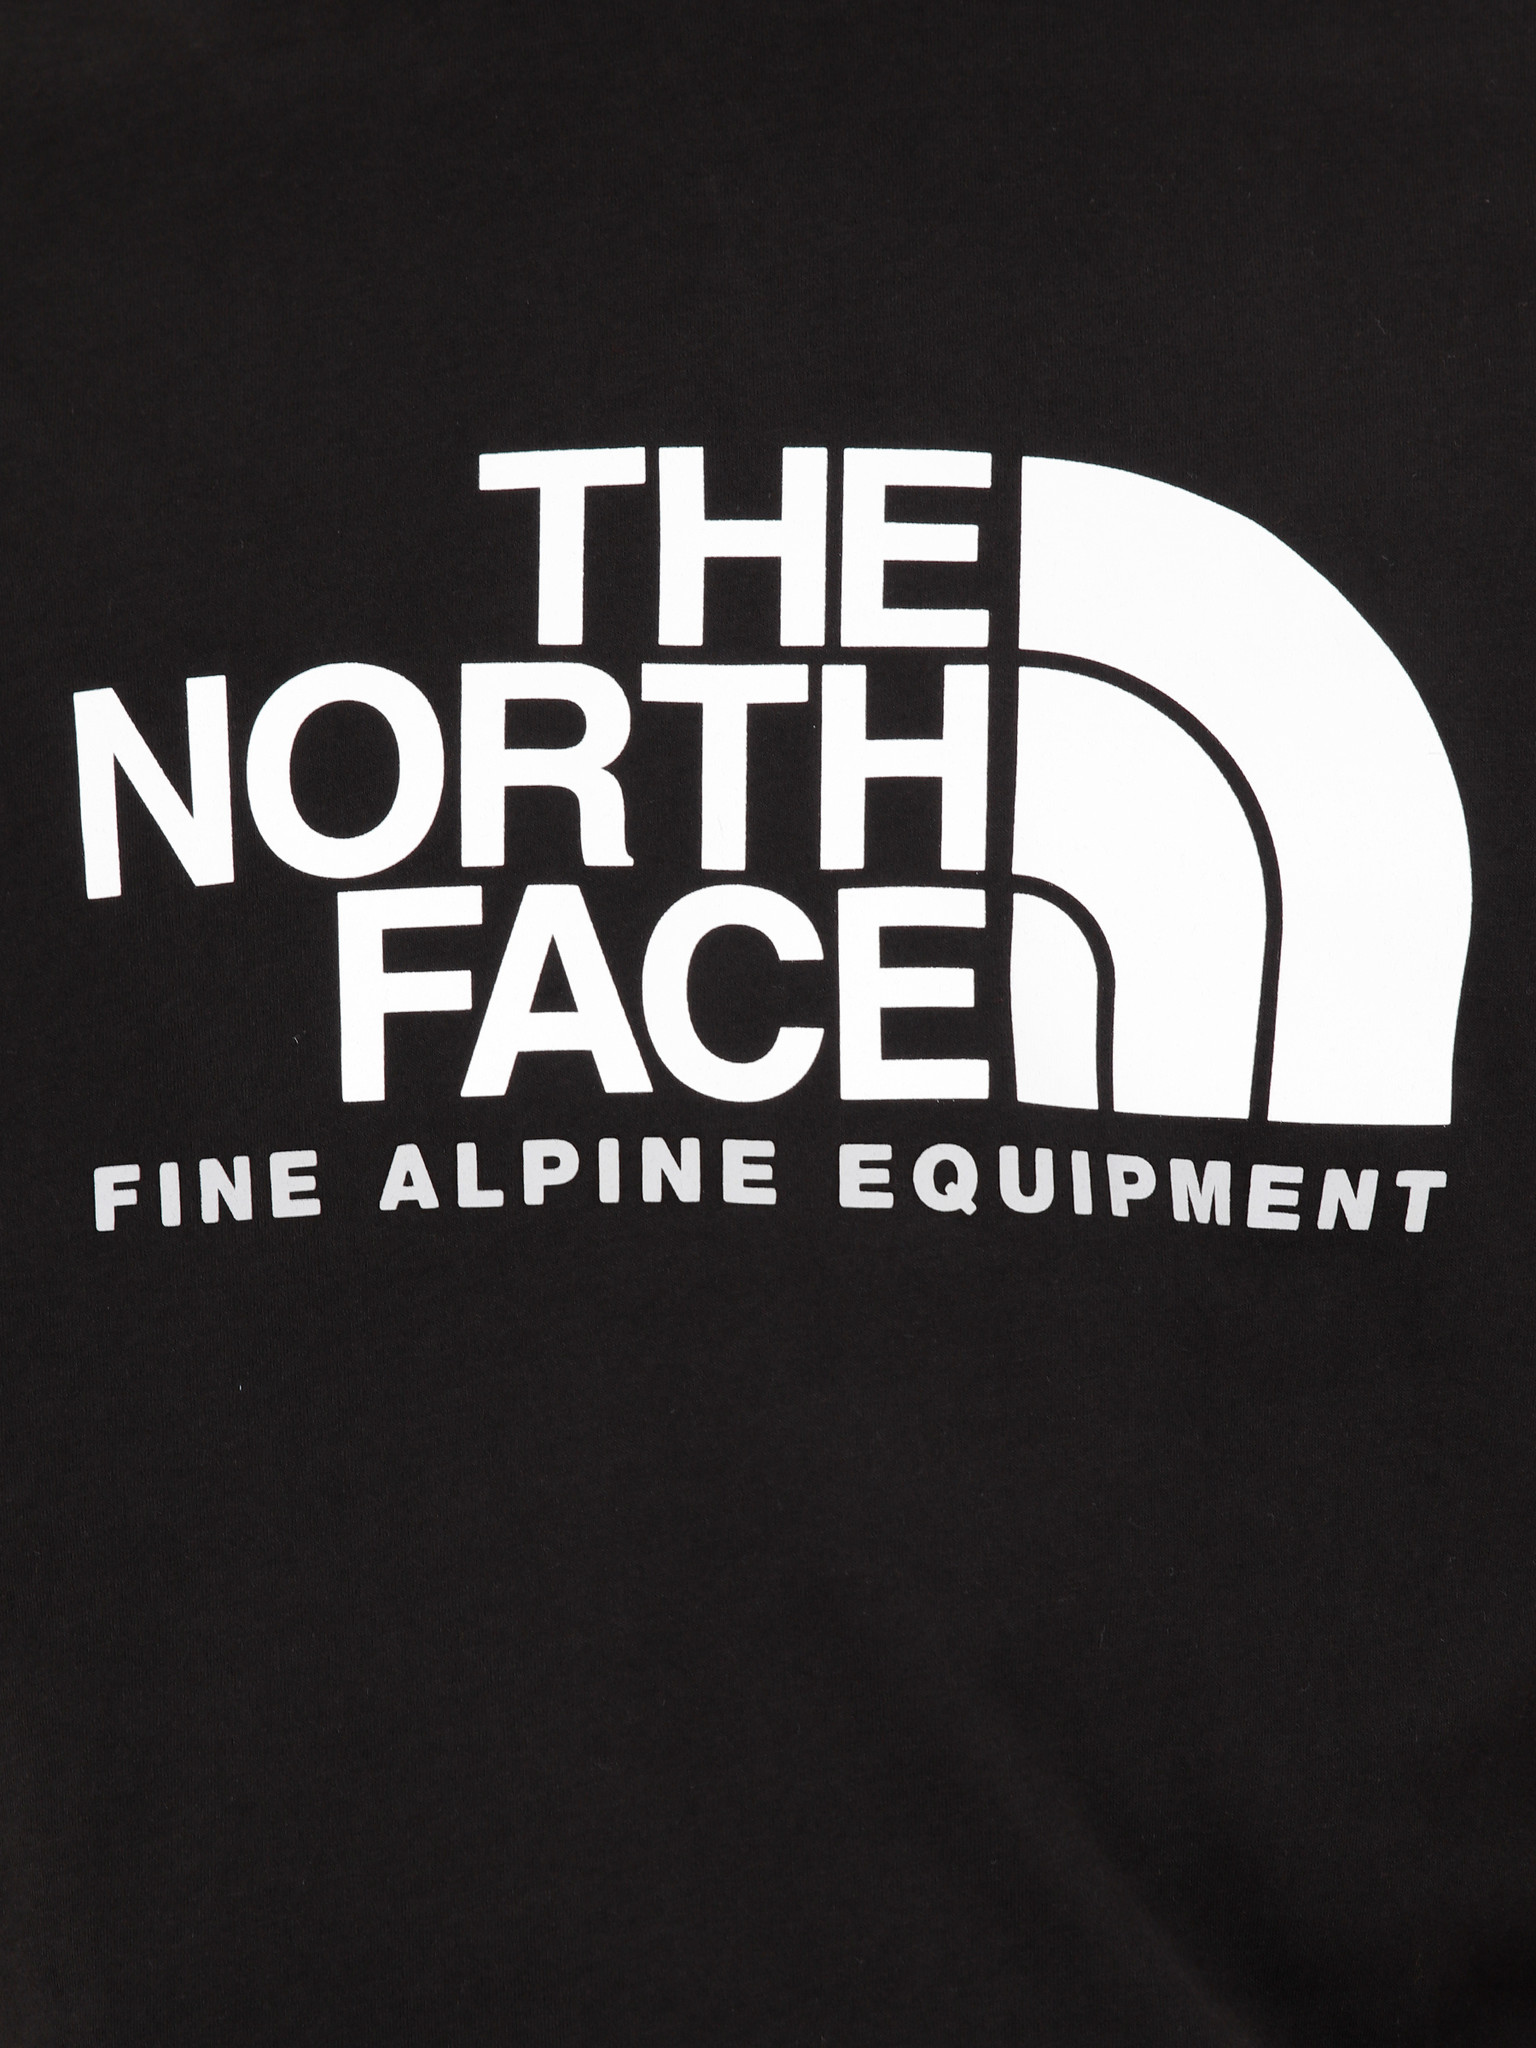 The North Face The North Face Short Sleeve Fine Alpine Tee 2 TNF Black NF0A4M6NJK31